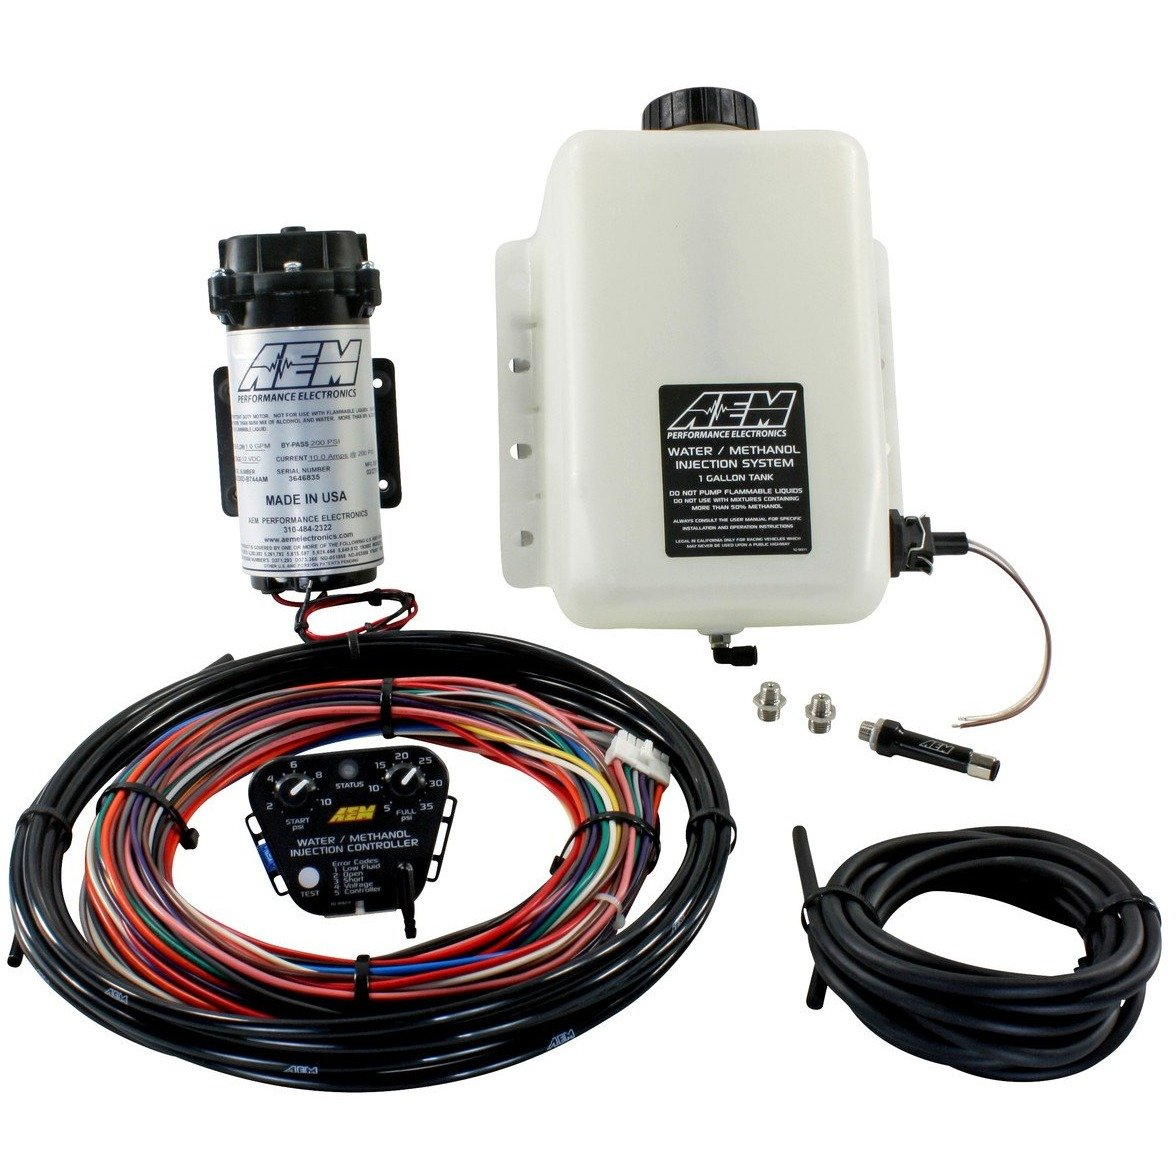 AEM 30-3300 - V2 WATER/METHANOL INJECTION KIT - STANDARD CONTROLLER 35PSI & 1 GALLON RESERVOIR,  WATER/METHANOL,  AEM,  Dark Road Performance - Dark Road Performance Ltd